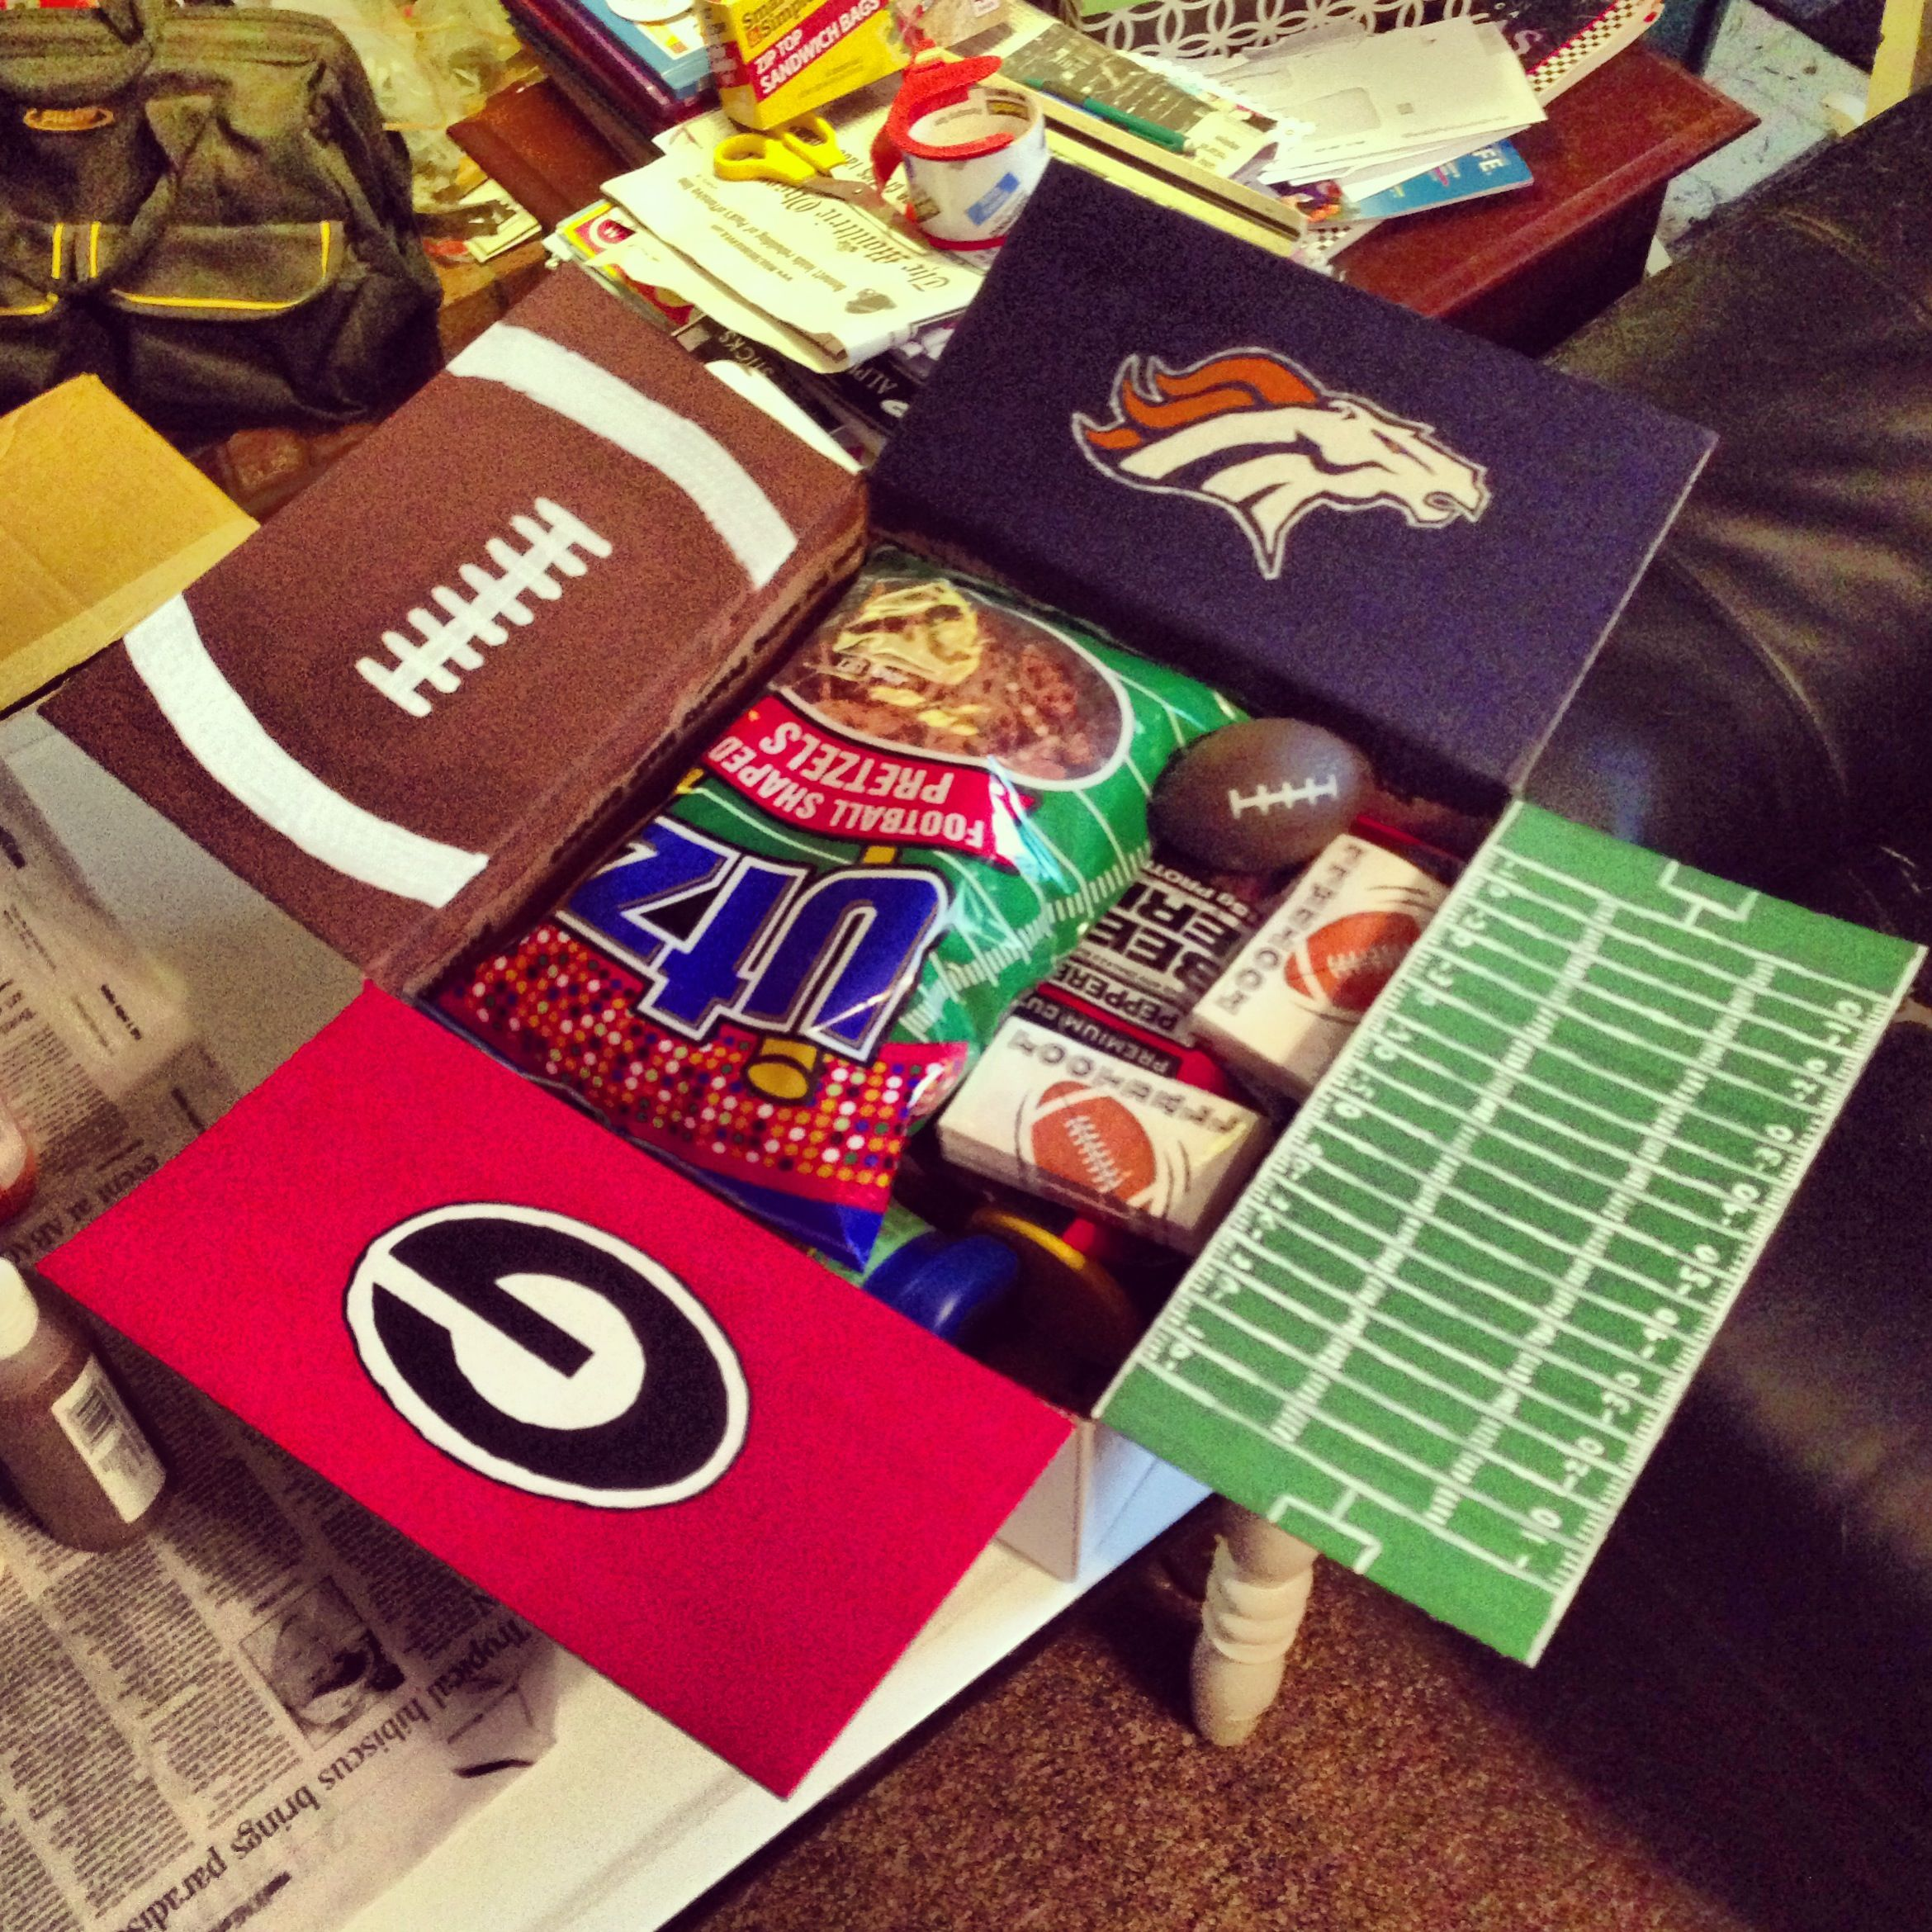 Luke's 12 Care Package! Since football season just started - his favorite NFL and college teams!